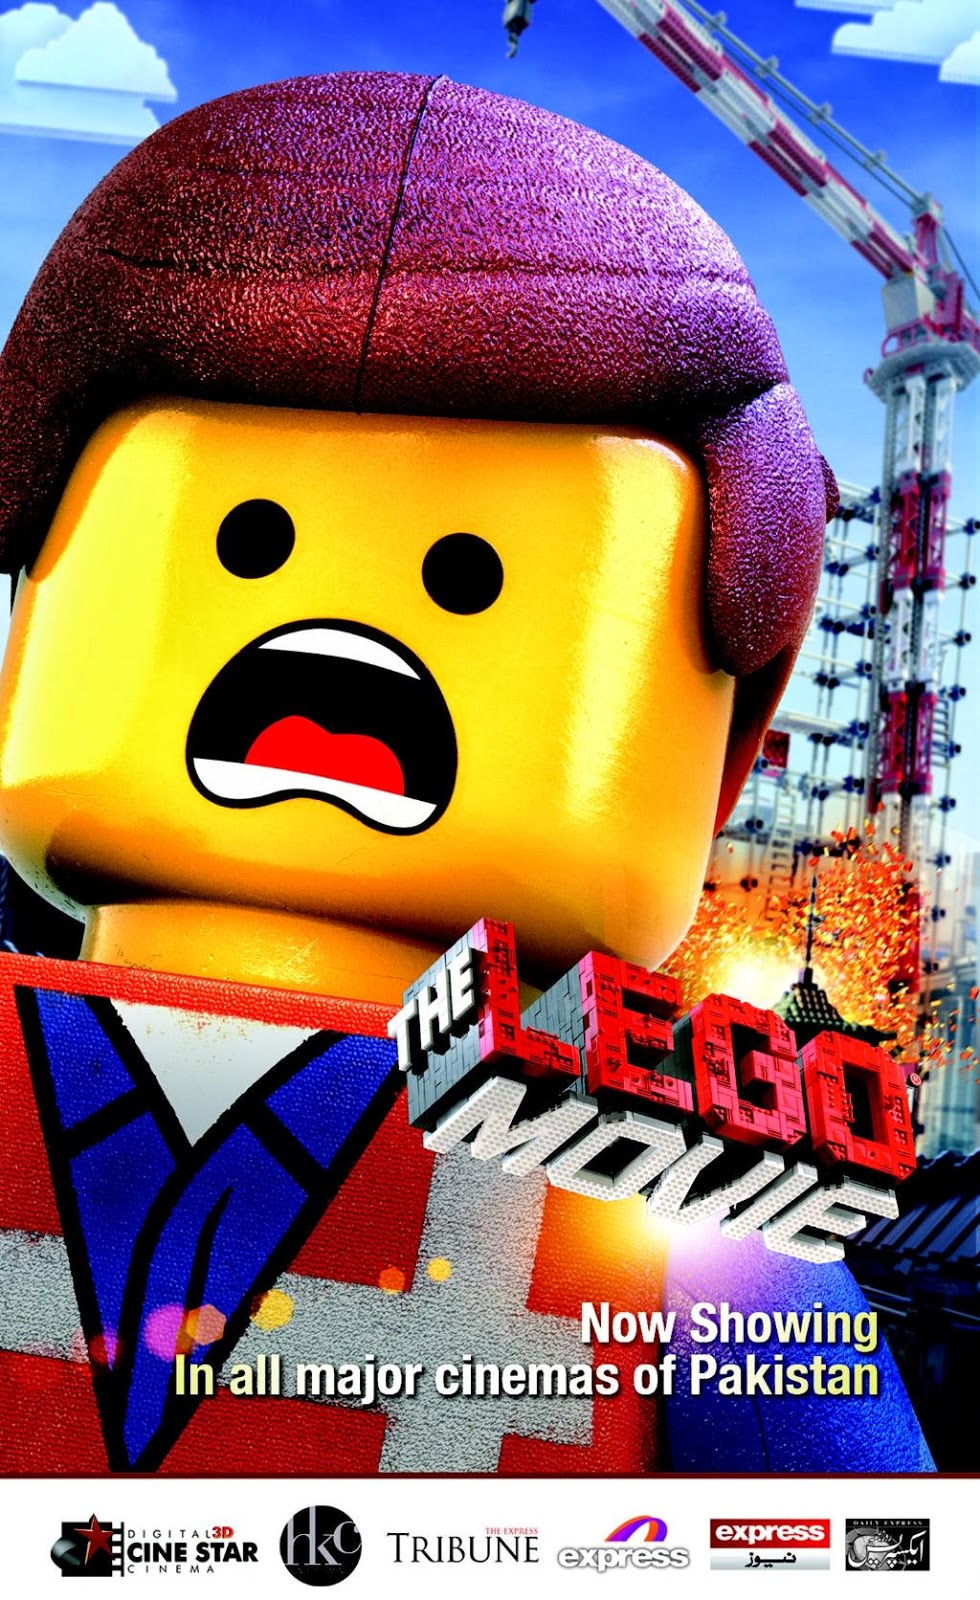 LEGO Mobie Cine Star 3D Cinema Digital HKC, Tribune, Express, Express News